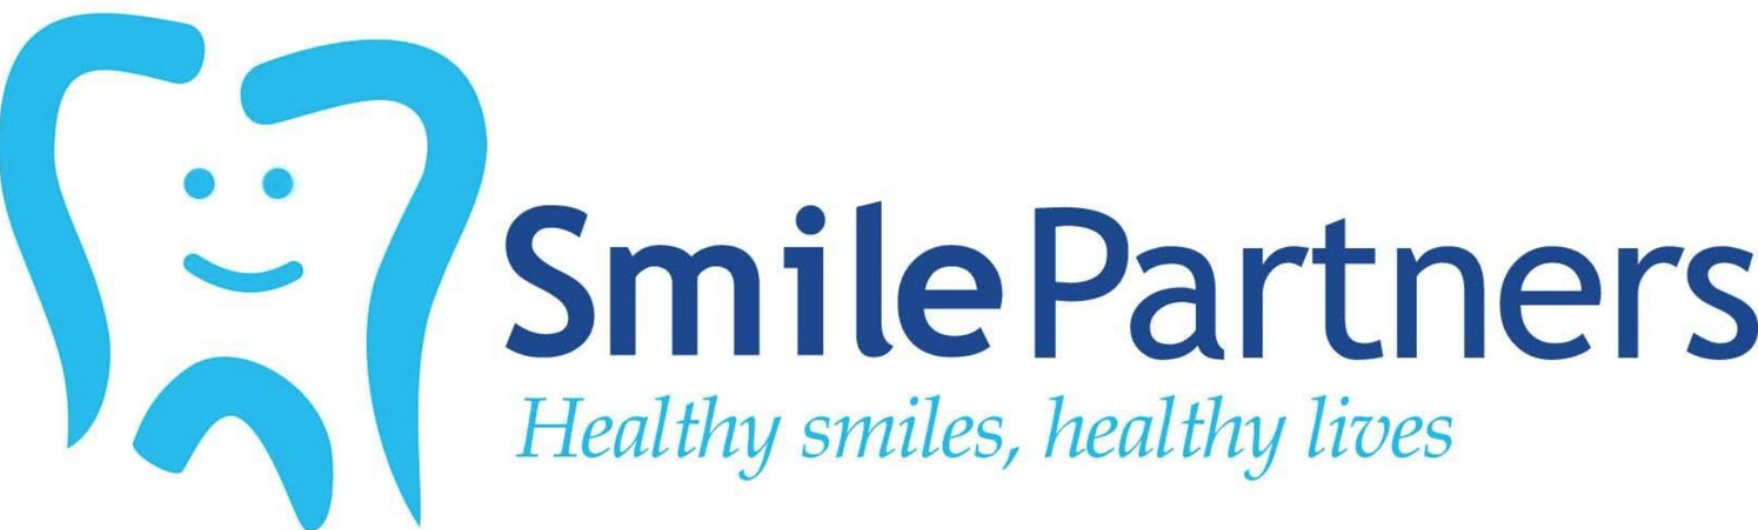 Washington State Smile Partners.png